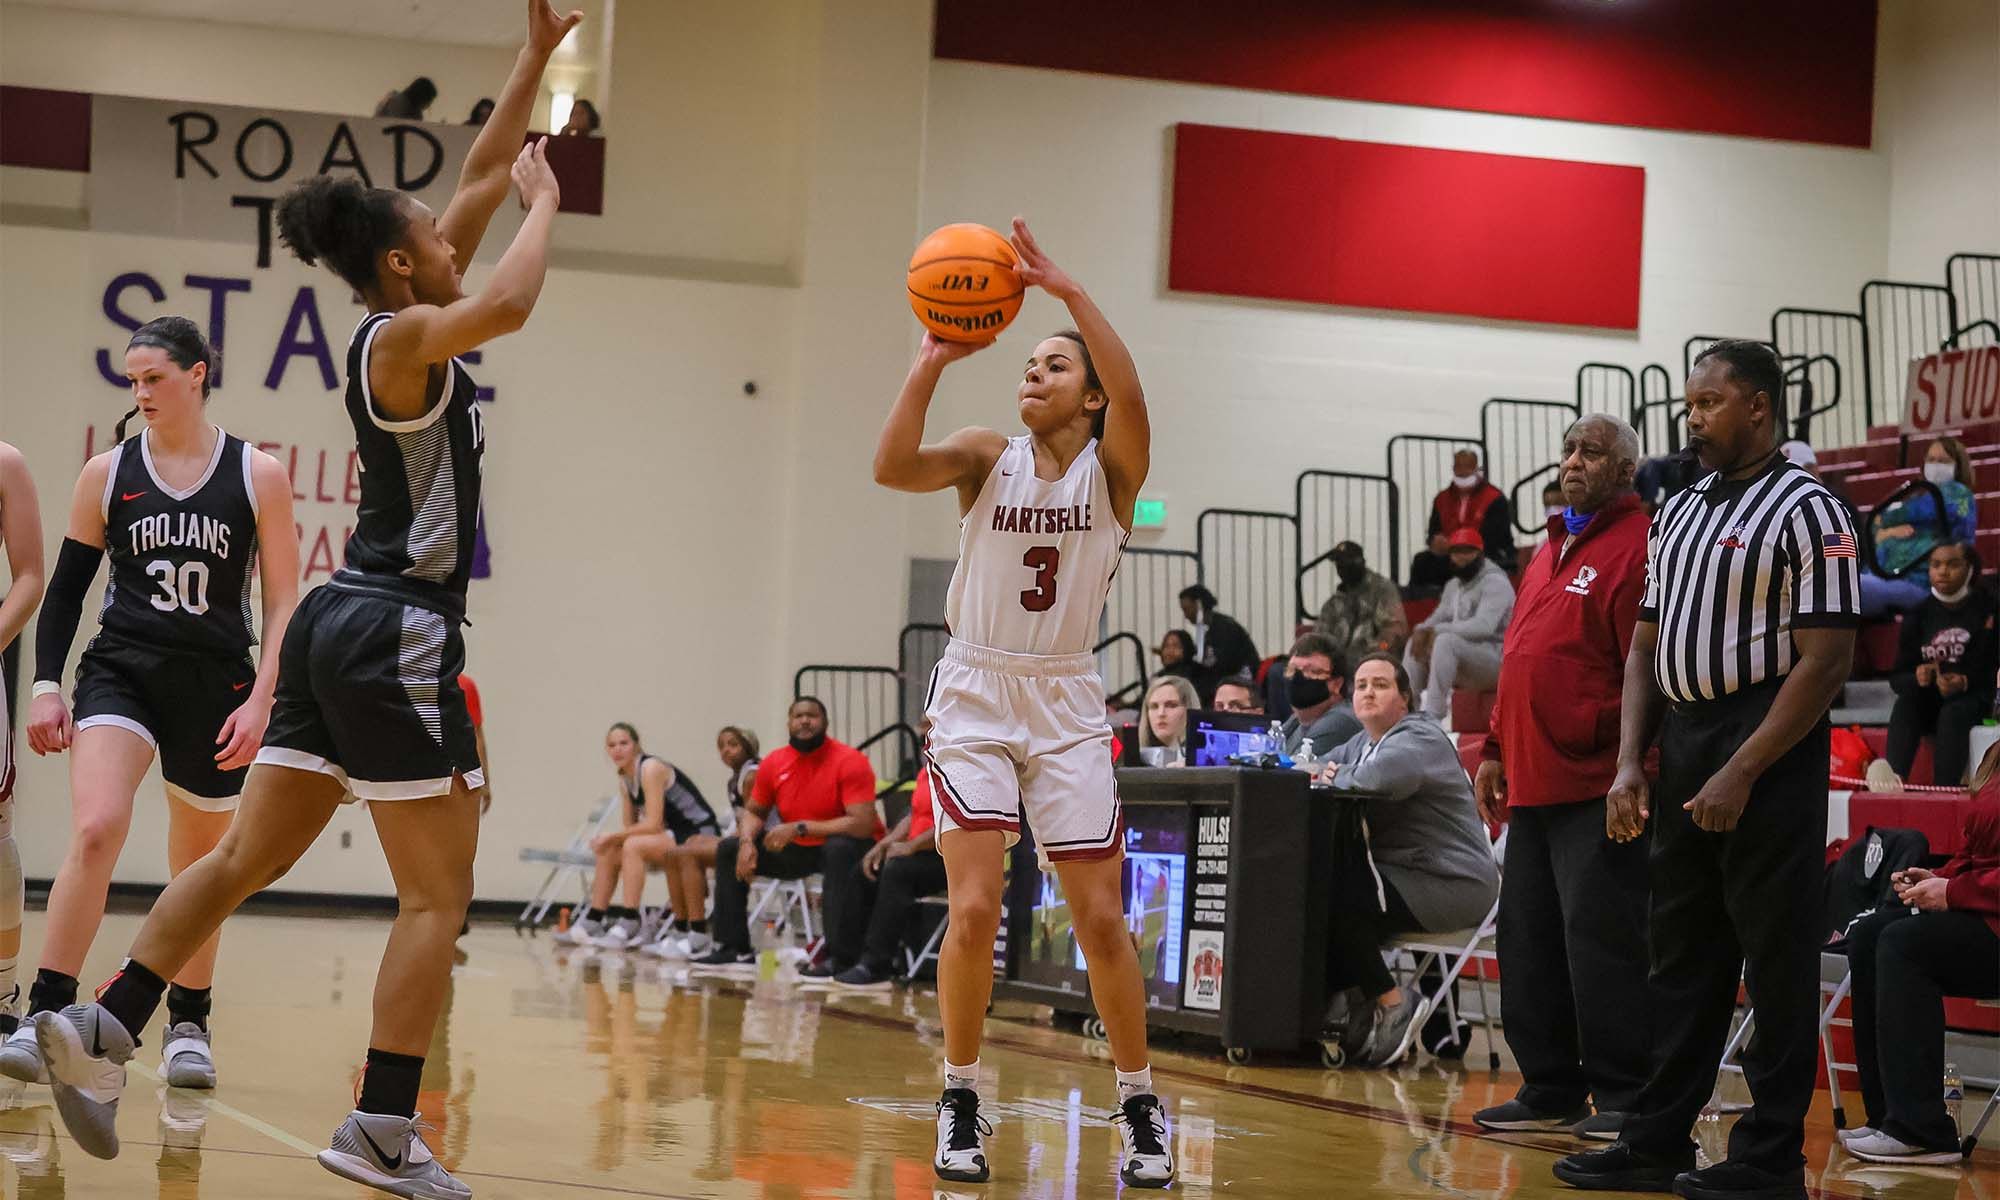 Lady Tigers comeback from 21 point deficit to defeat Muscle Shoals 48-45